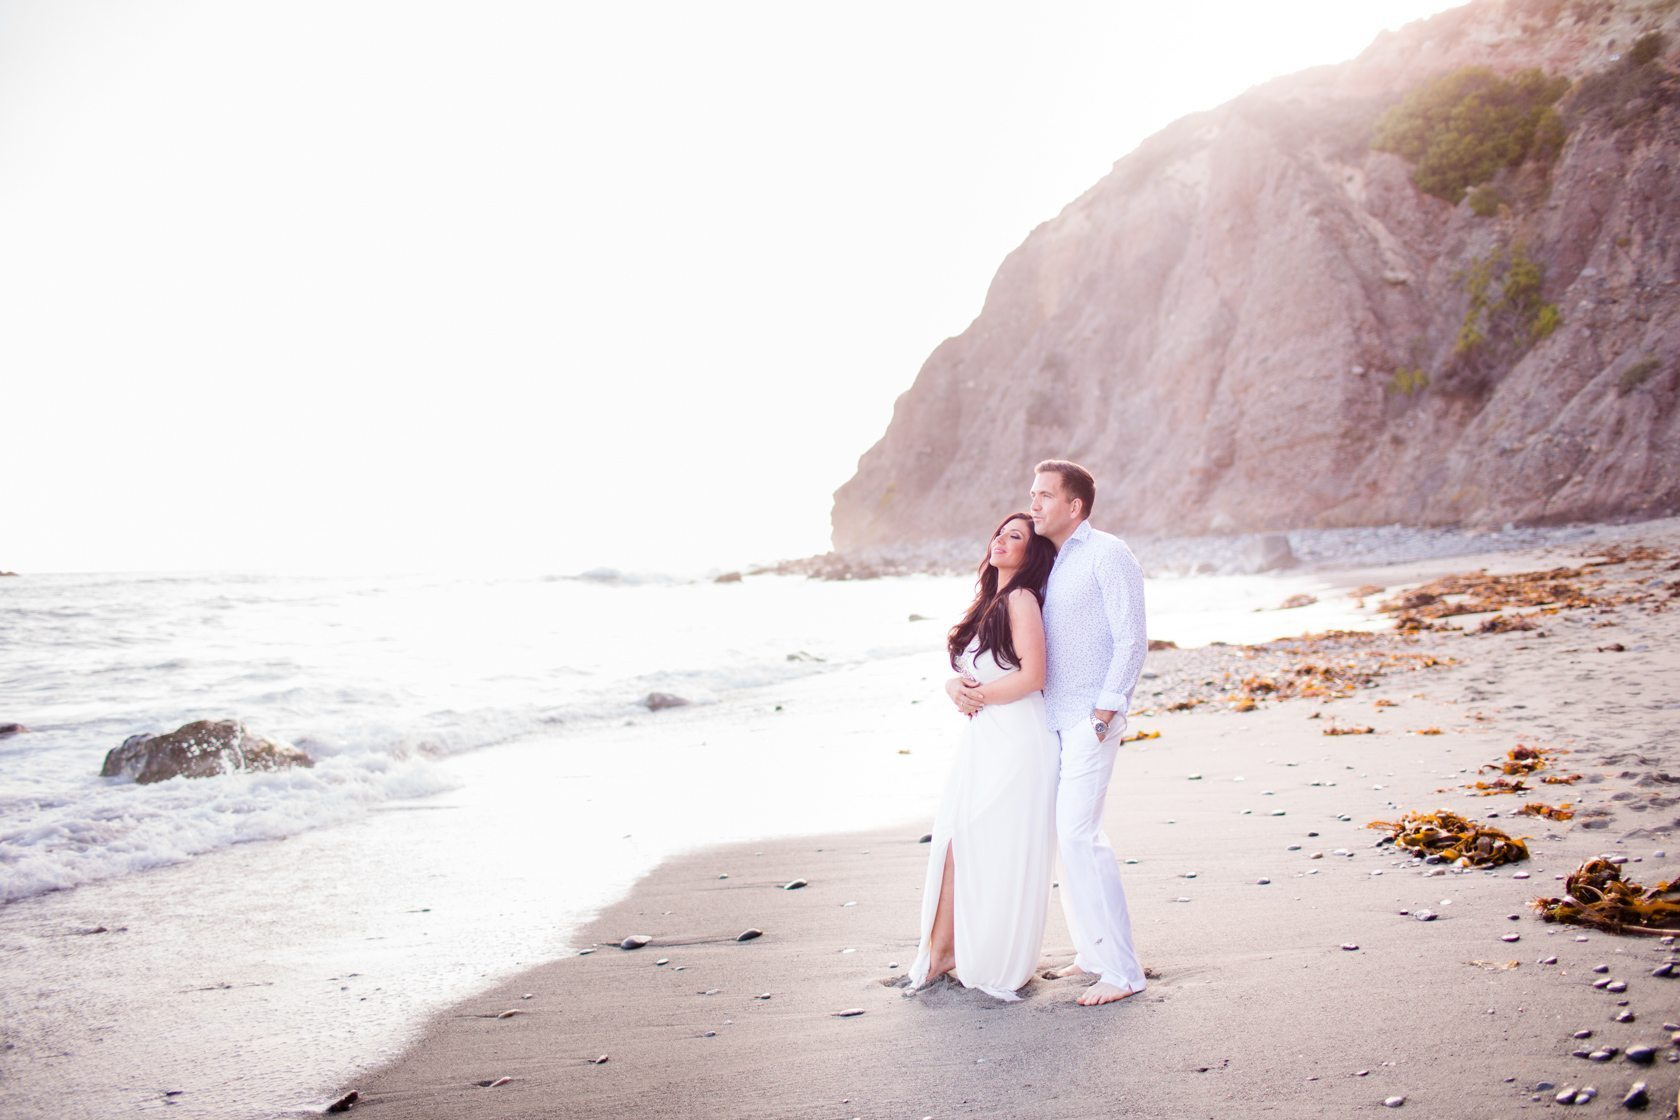 Mission_San_Juan_Capistrano_Engagement_Session_23.jpg